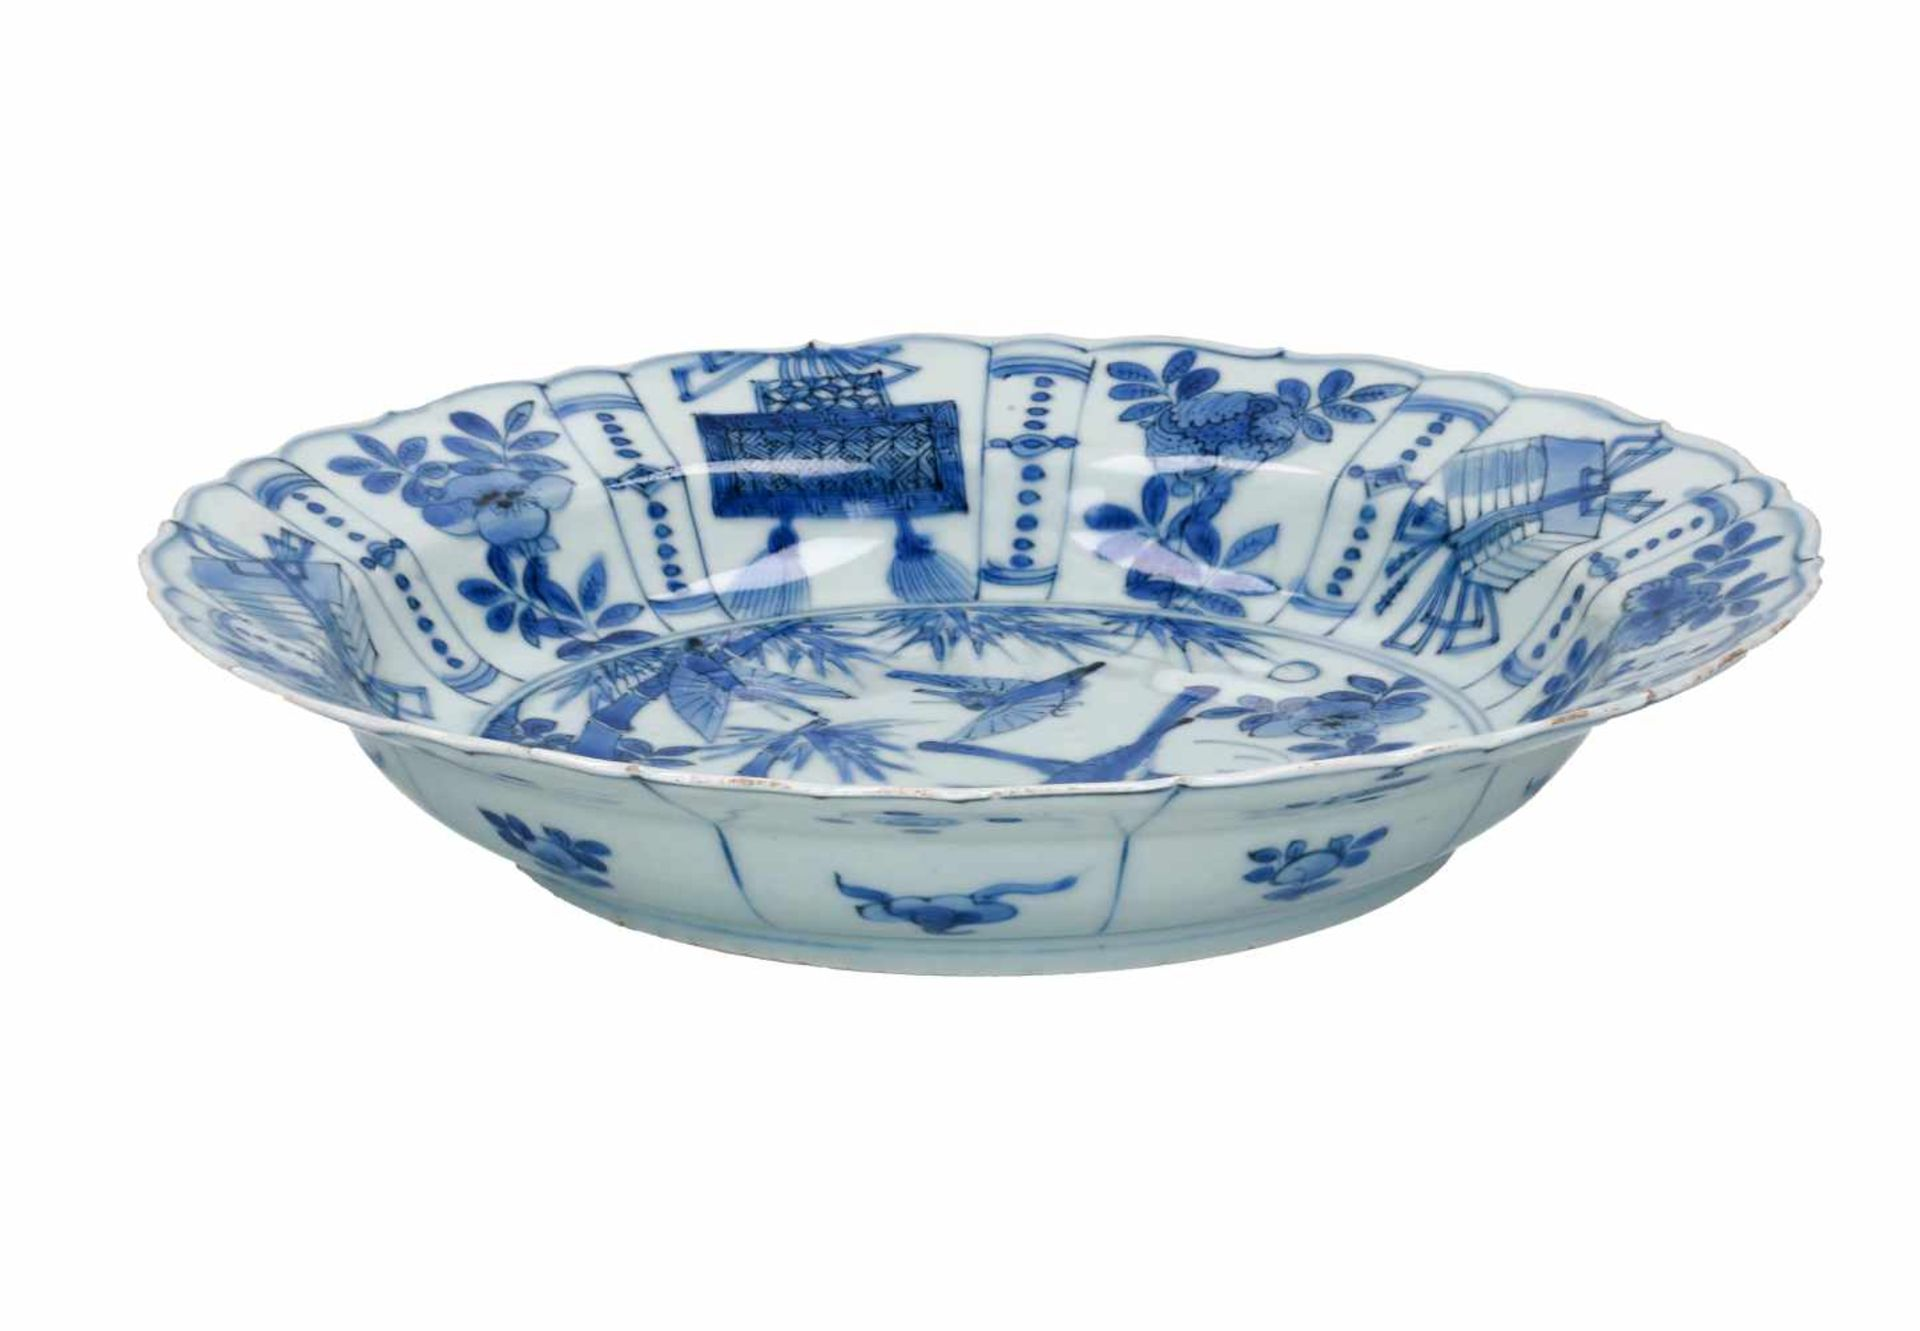 A blue and white 'kraak' porcelain dish, decorated with birds. Unmarked. China, Wanli. - Bild 3 aus 3